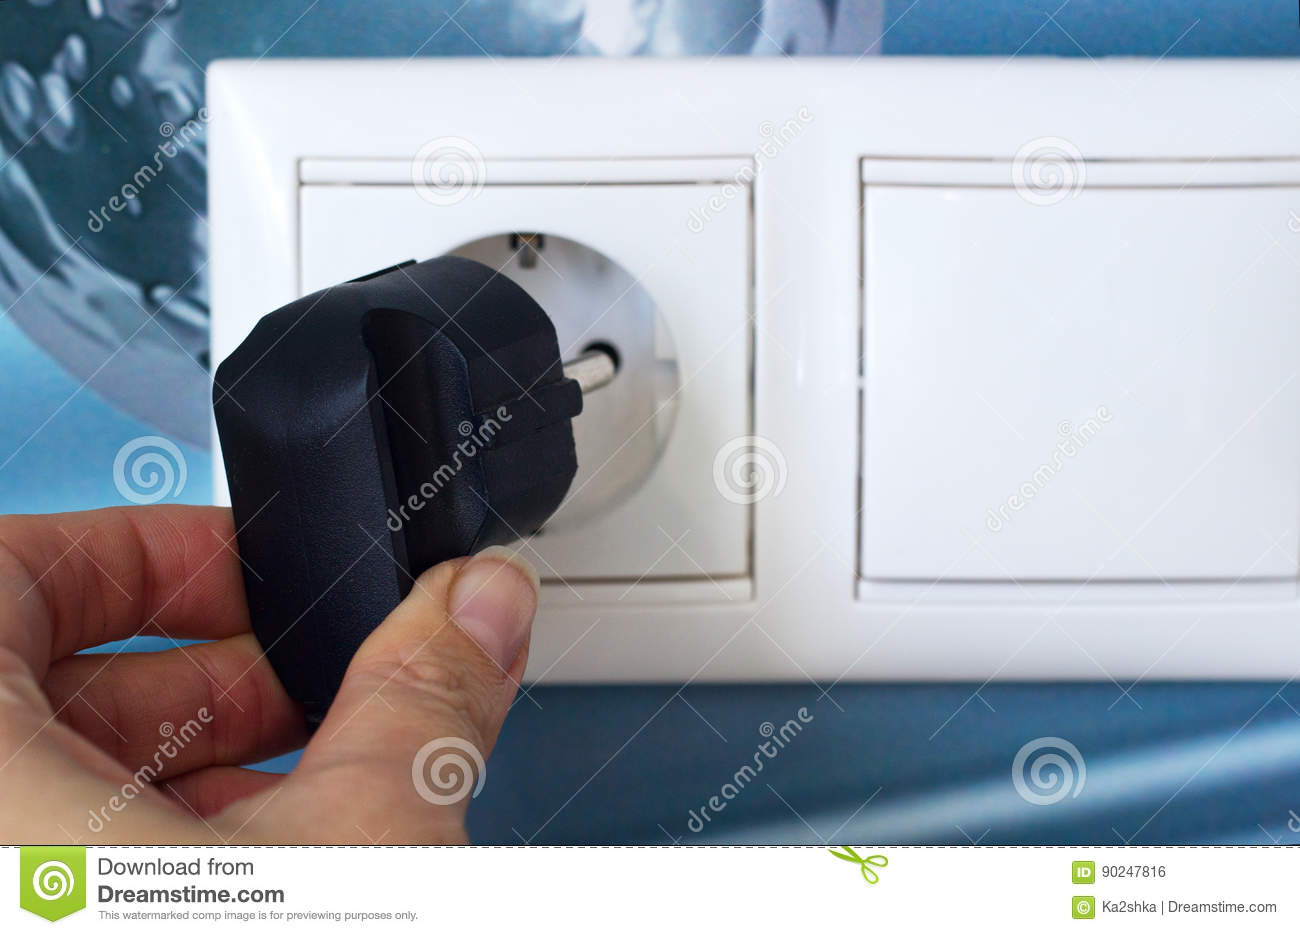 Unplug or plugged in concept,hand holding electric plug